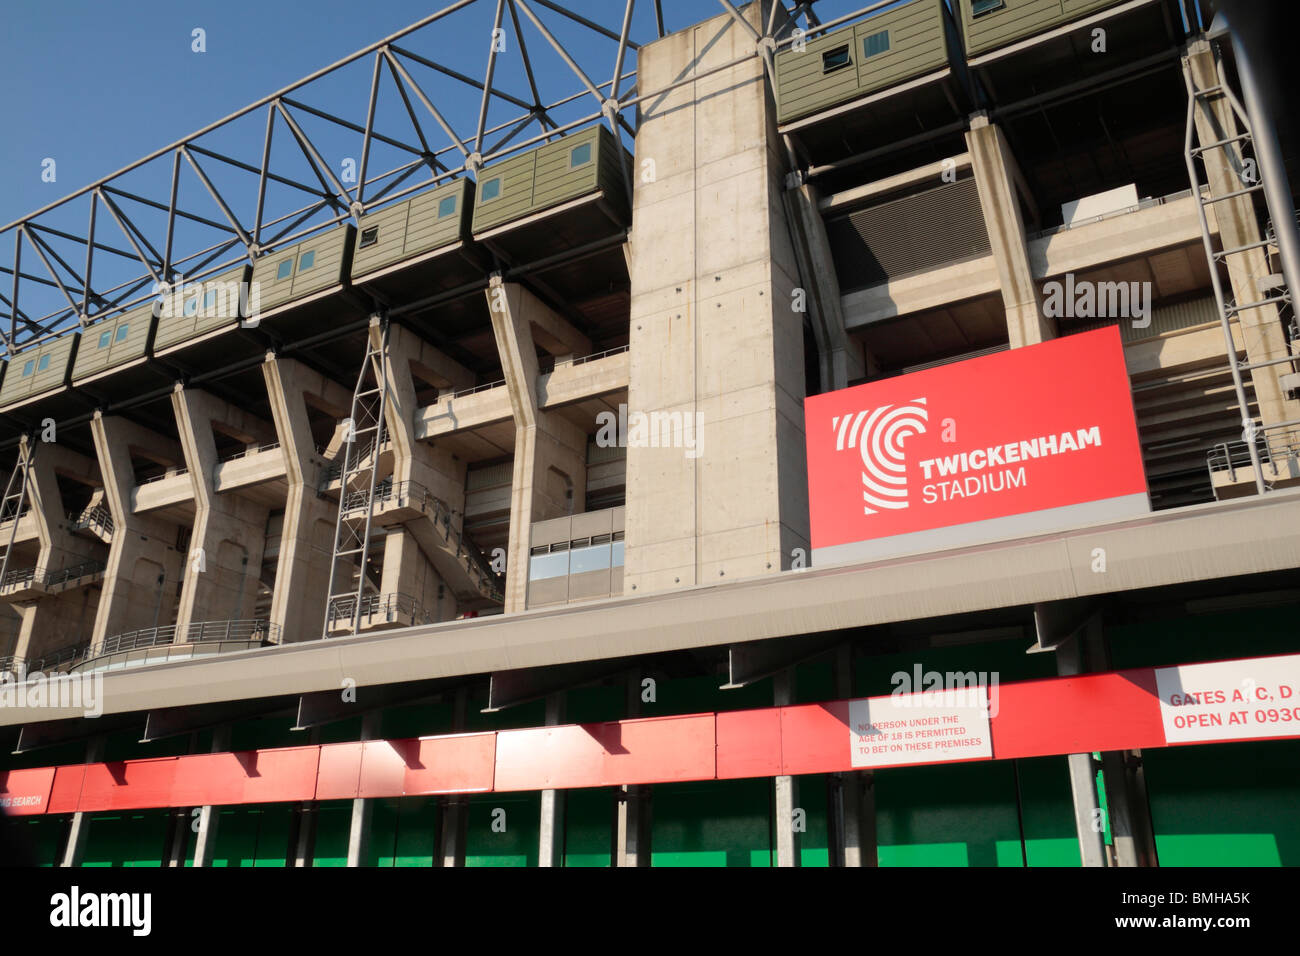 The West Stand of Twickenham Rugby Stadium, home of English International rugby, in south west London, UK.. August - Stock Image